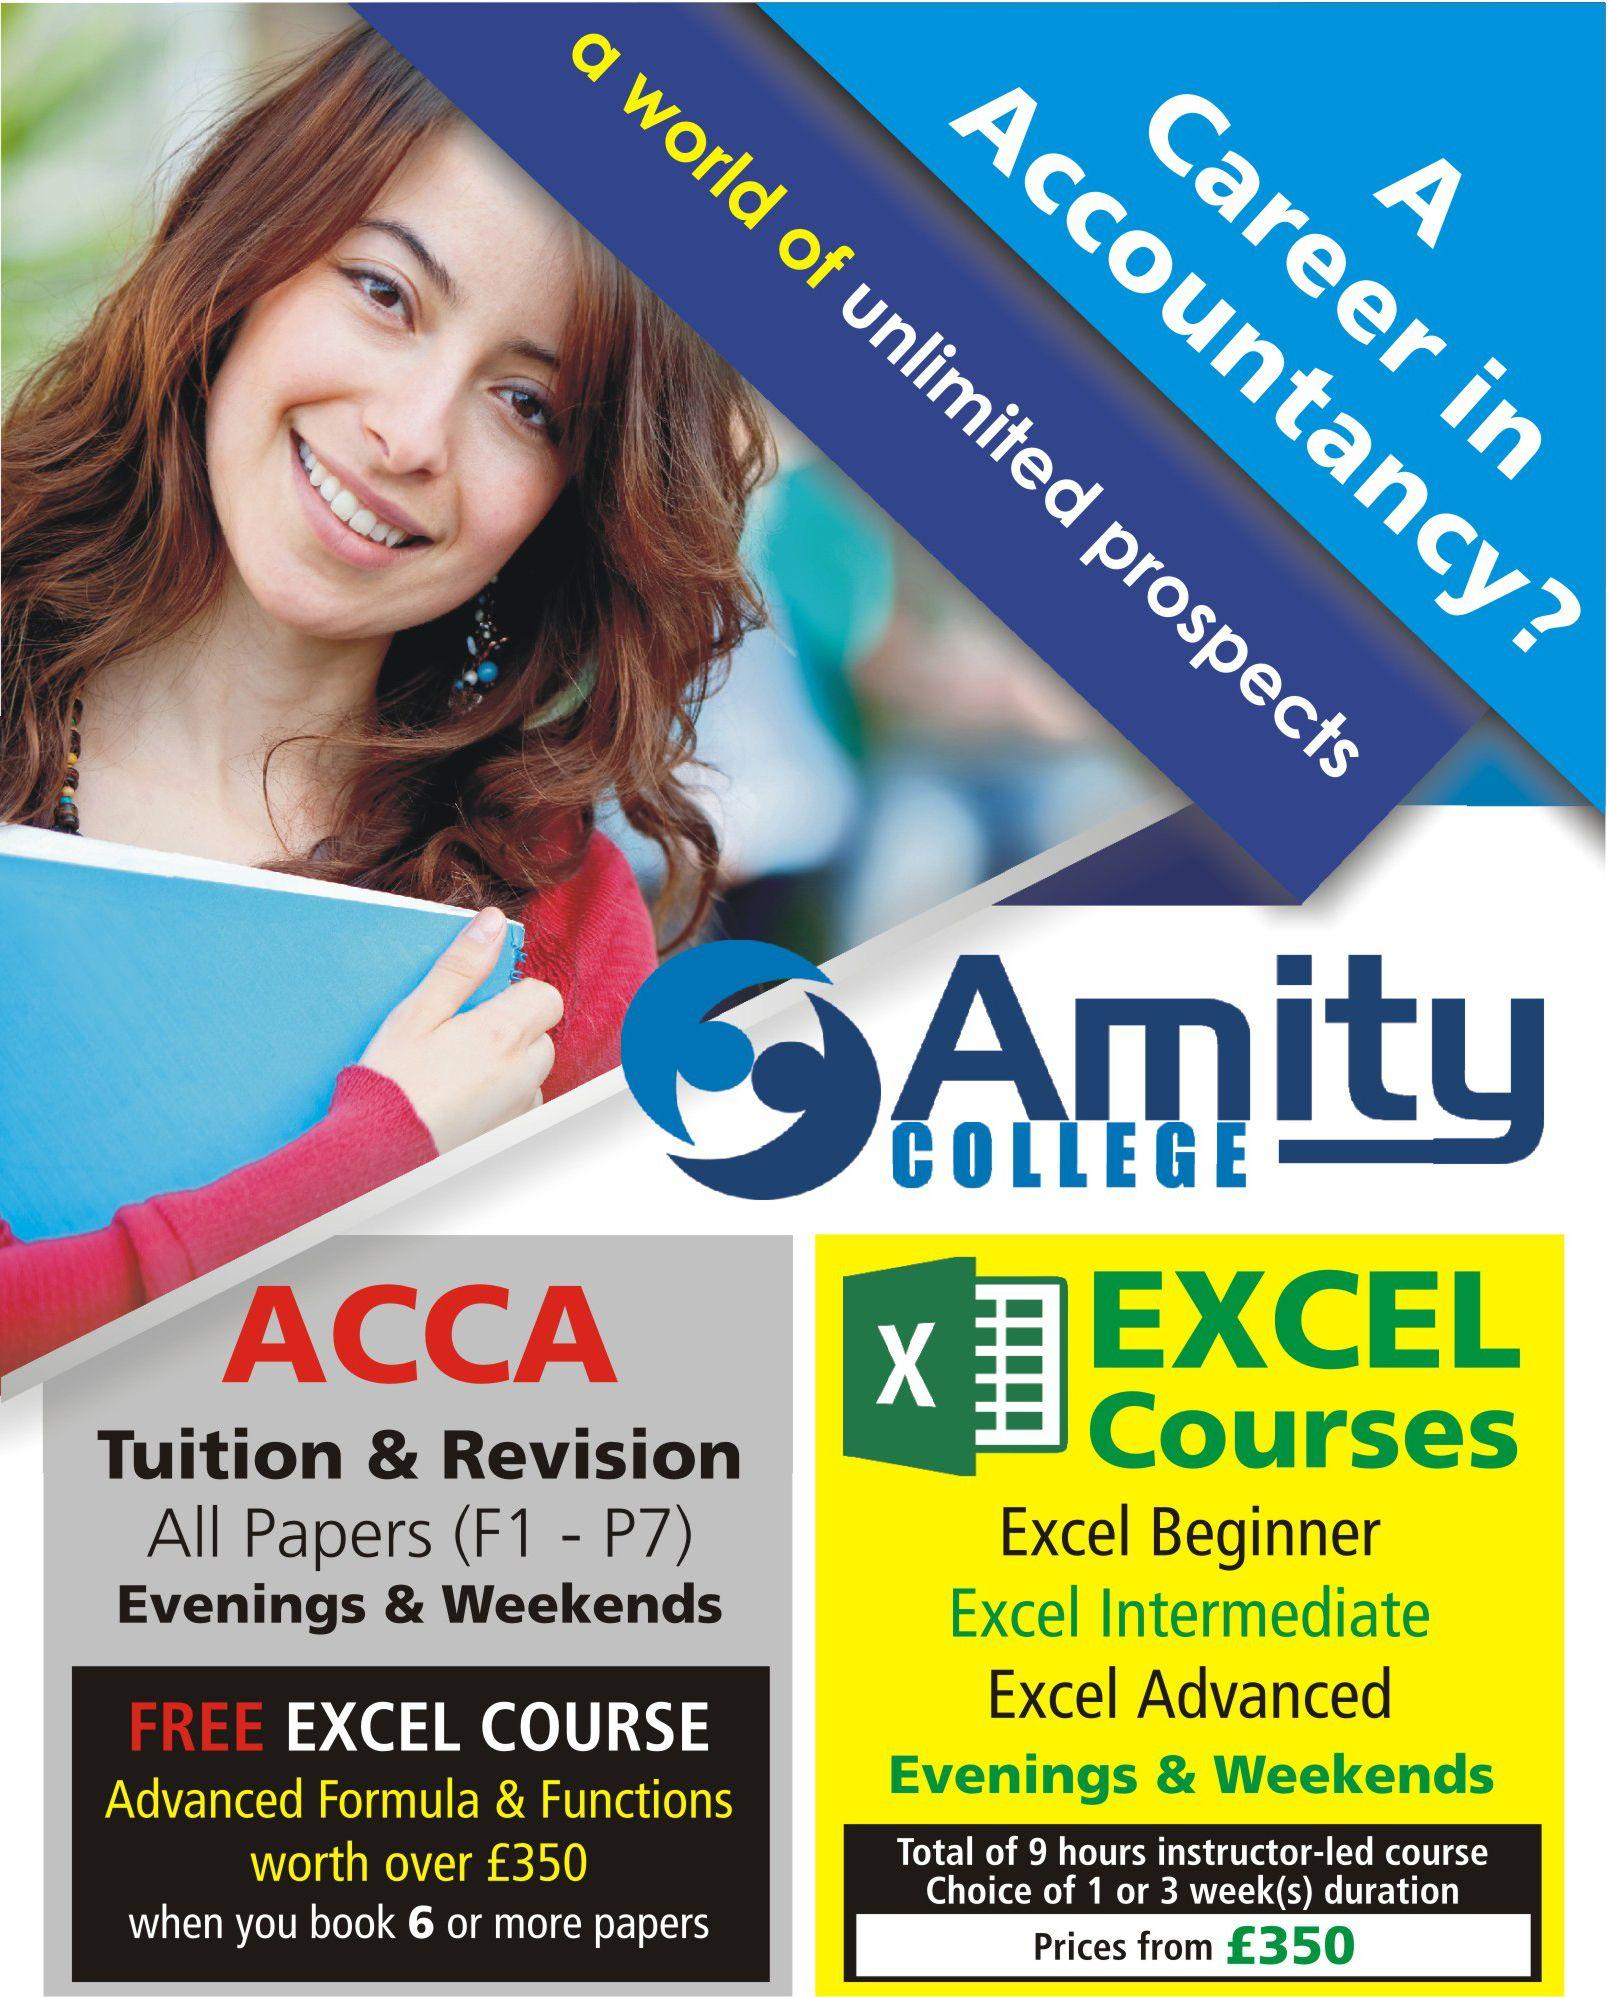 Facebook Acca Excel Courses